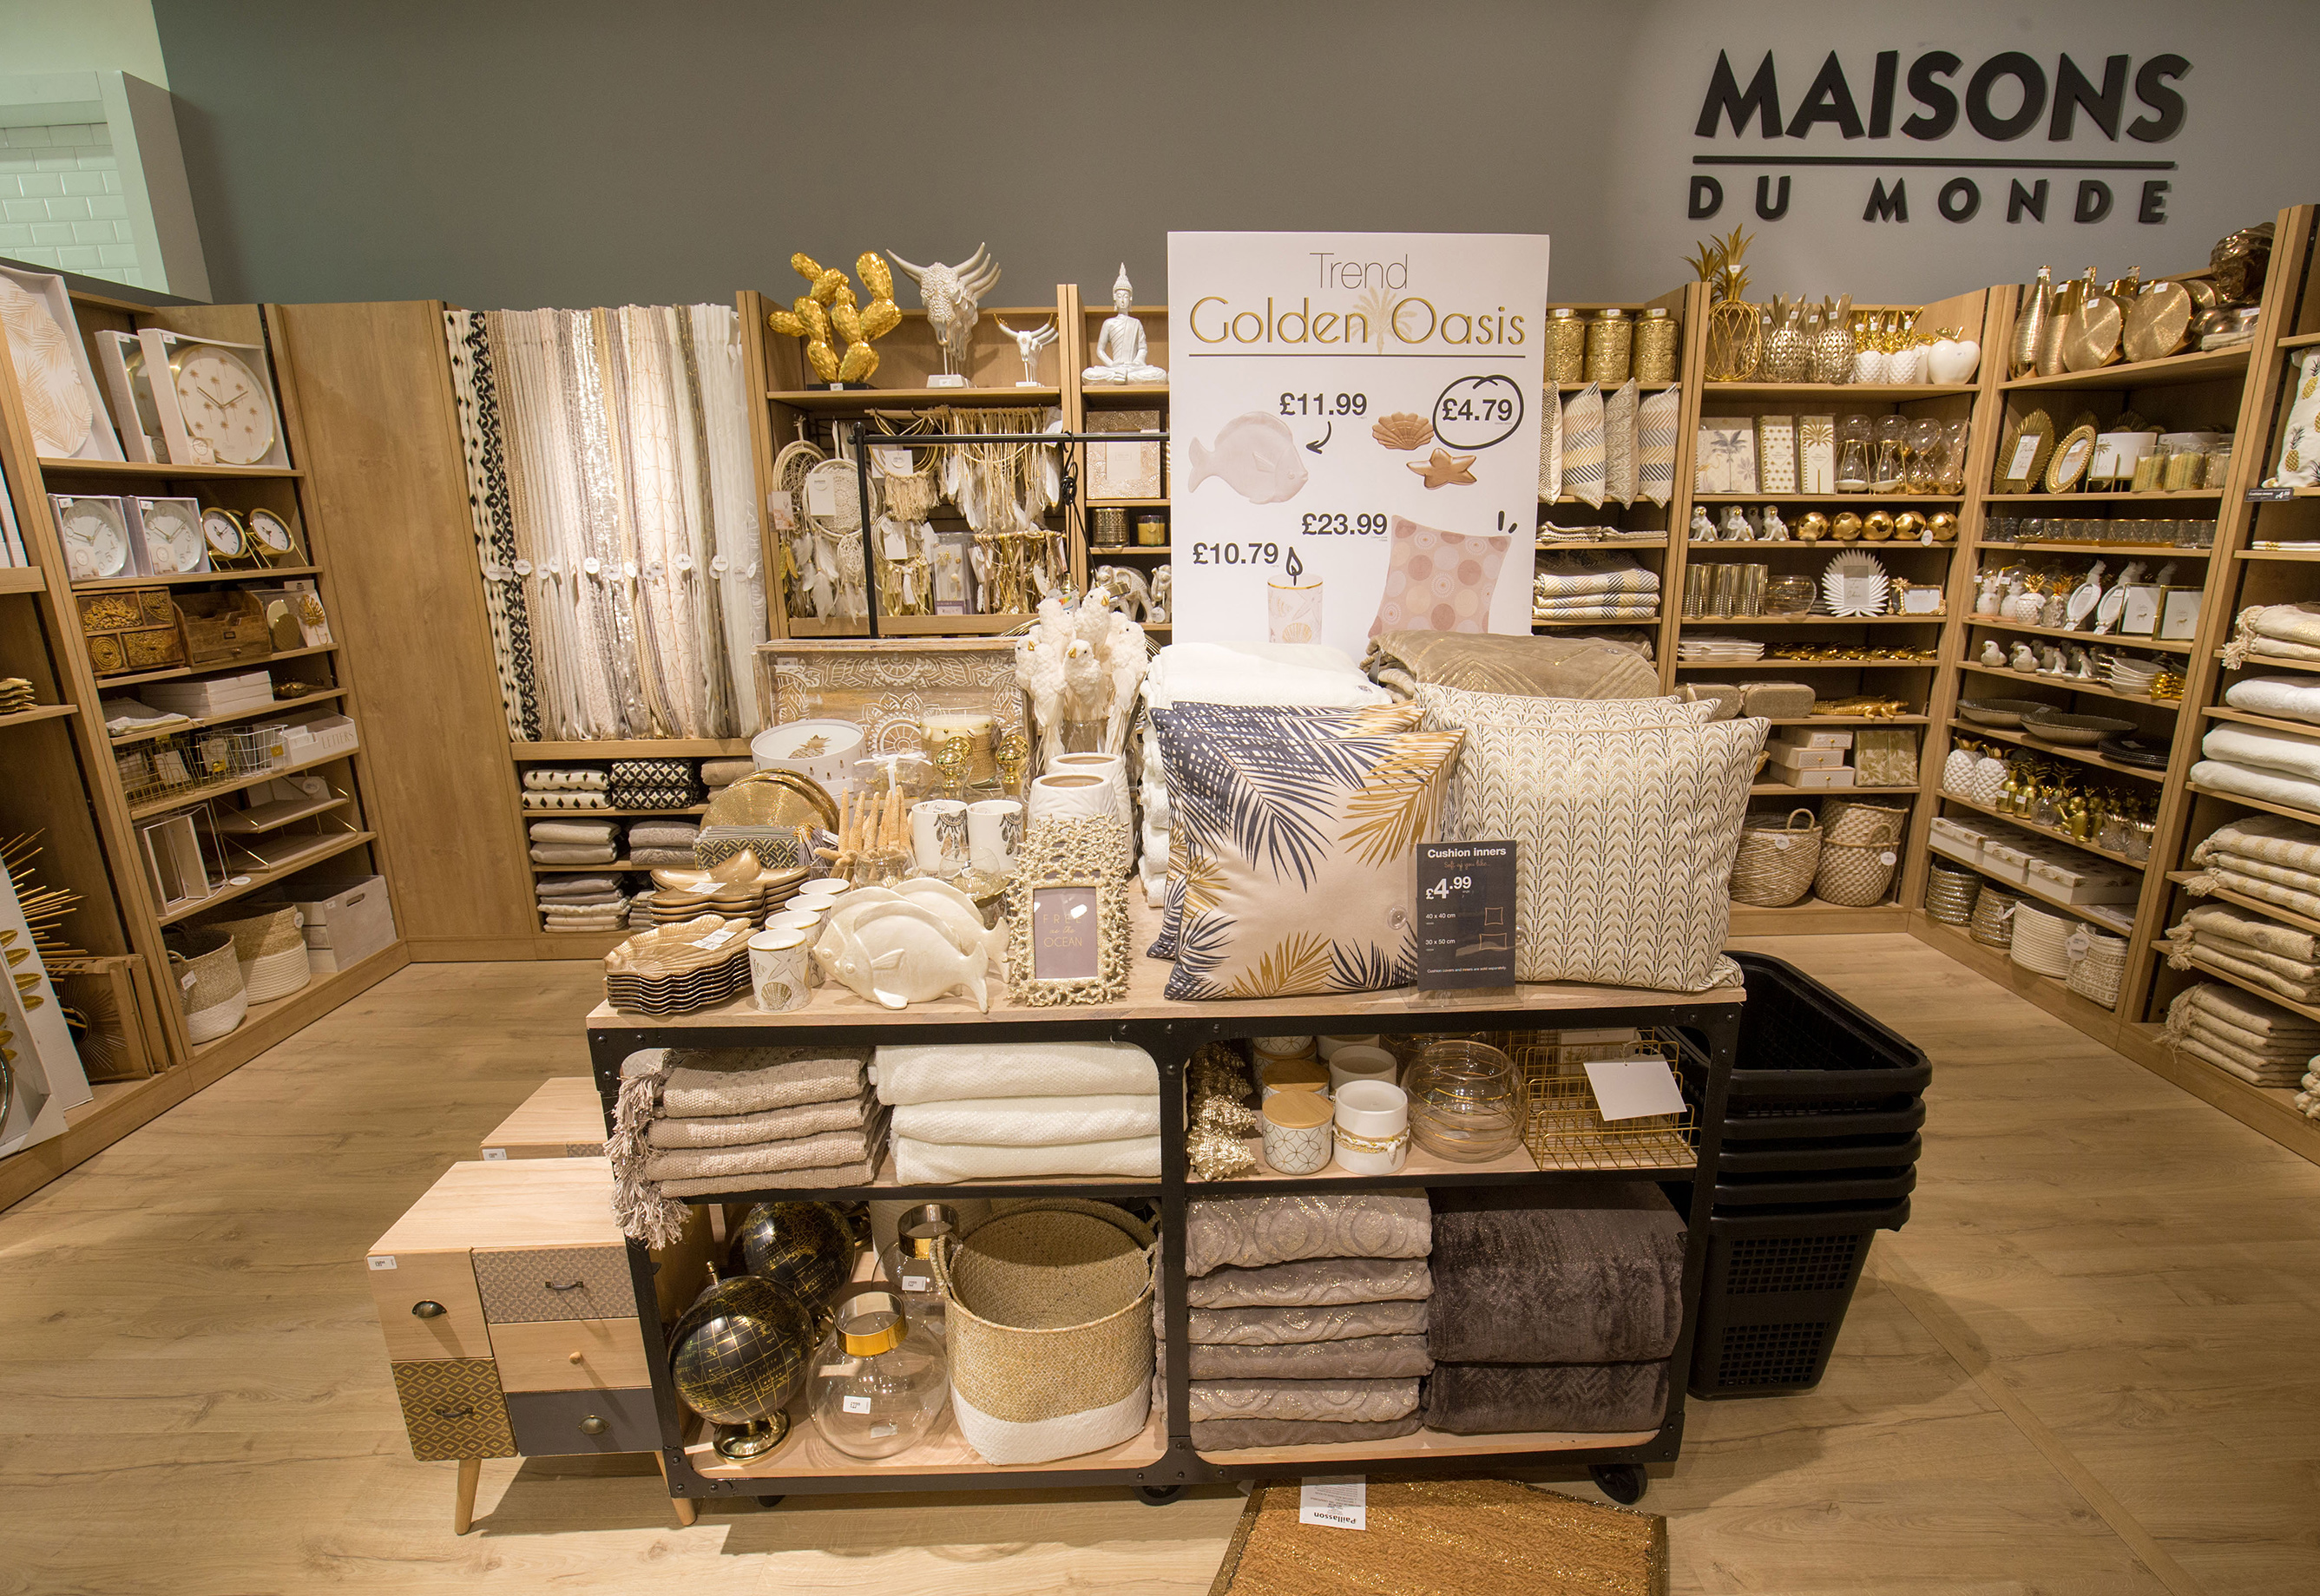 Maisons du Monde opened 3 concessions in London Westfield     debenhams